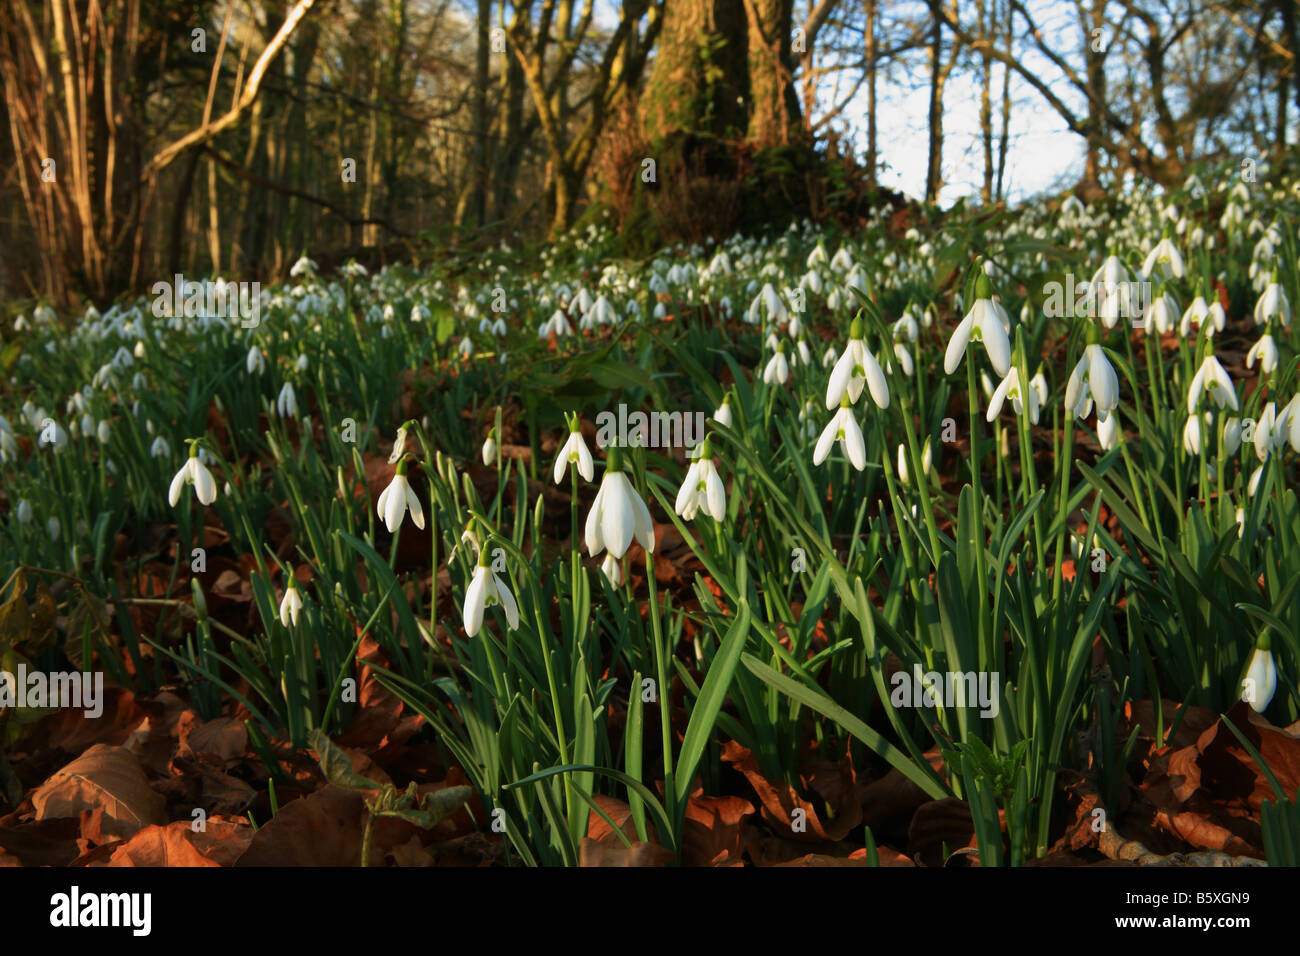 Snowdrops growing wild in woodland - Stock Image